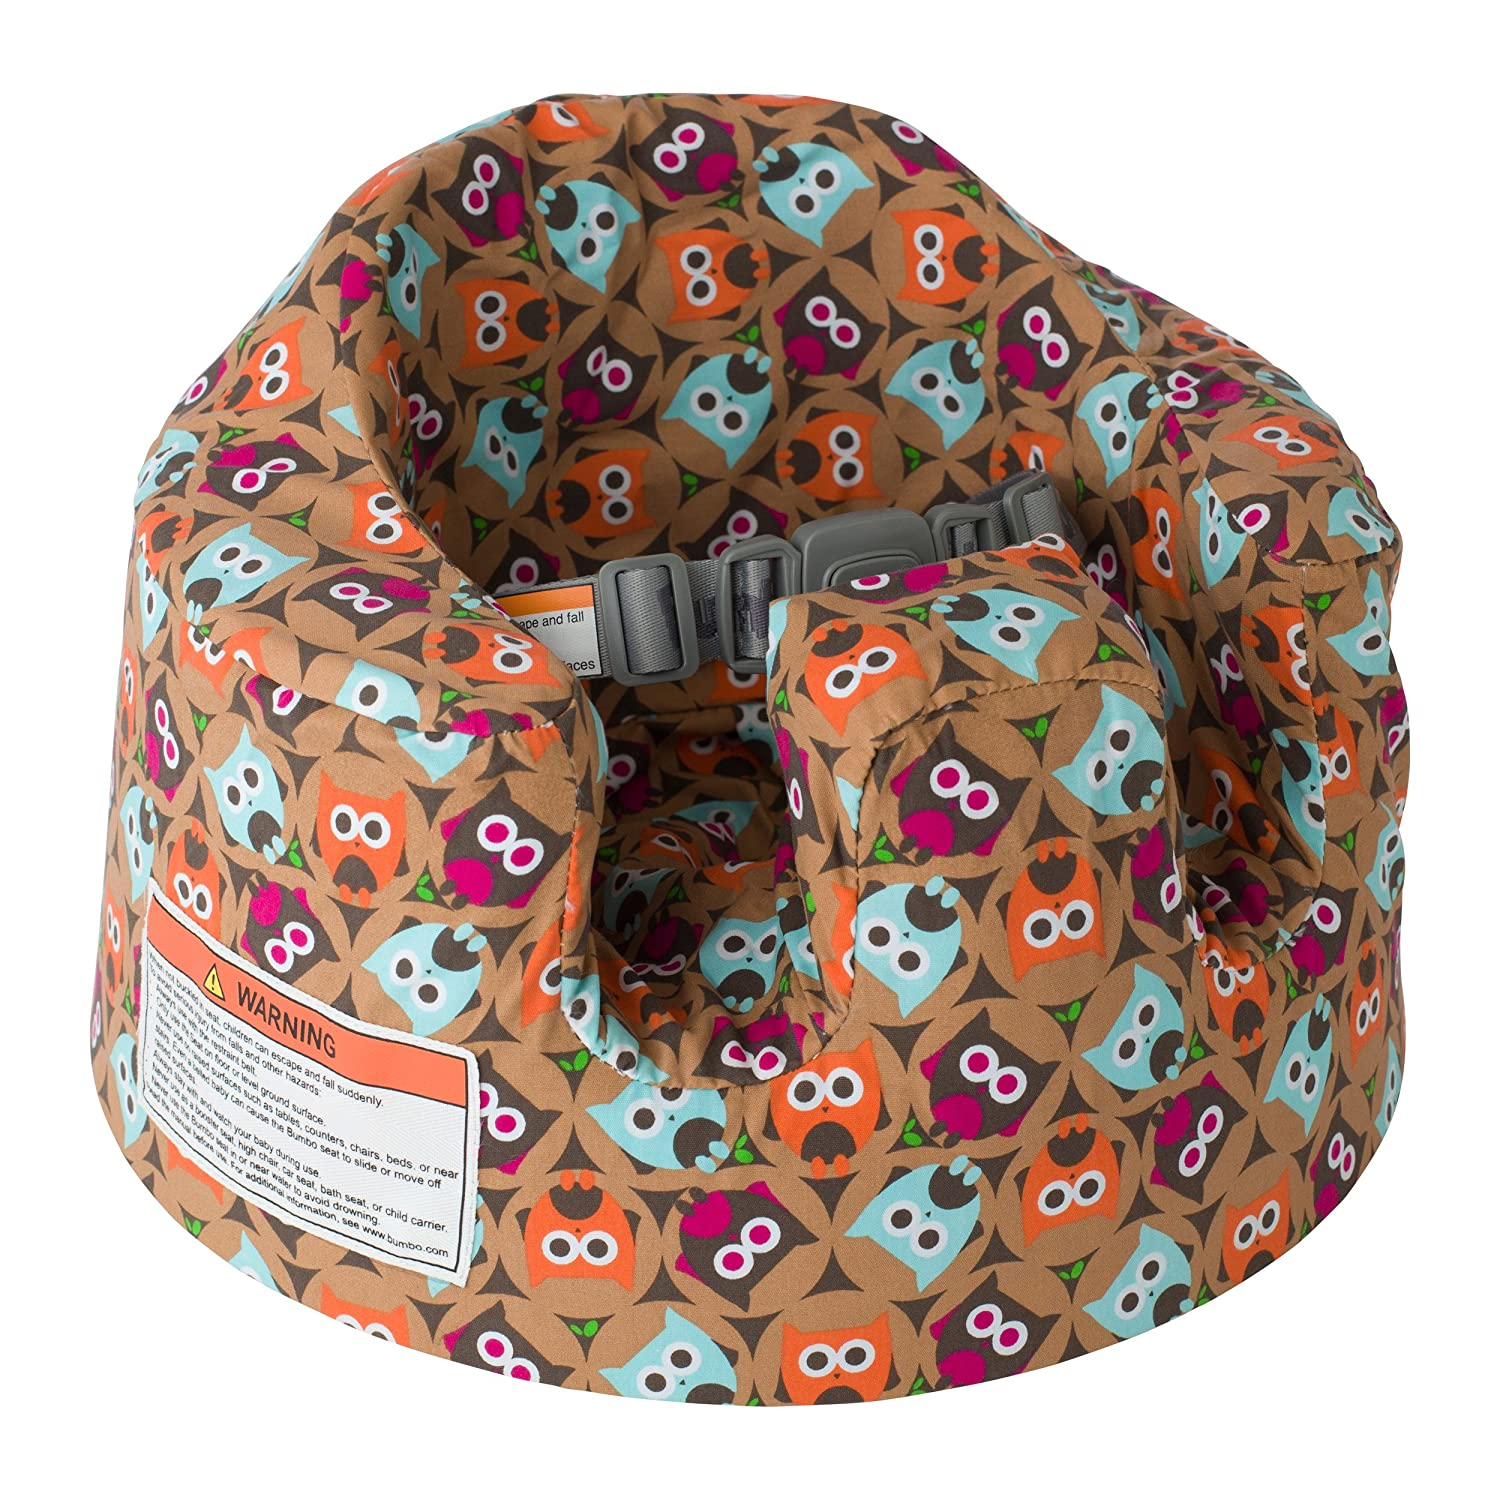 Bumbo Chair Recall Bumbo Seat Covers Settebellos Pizza